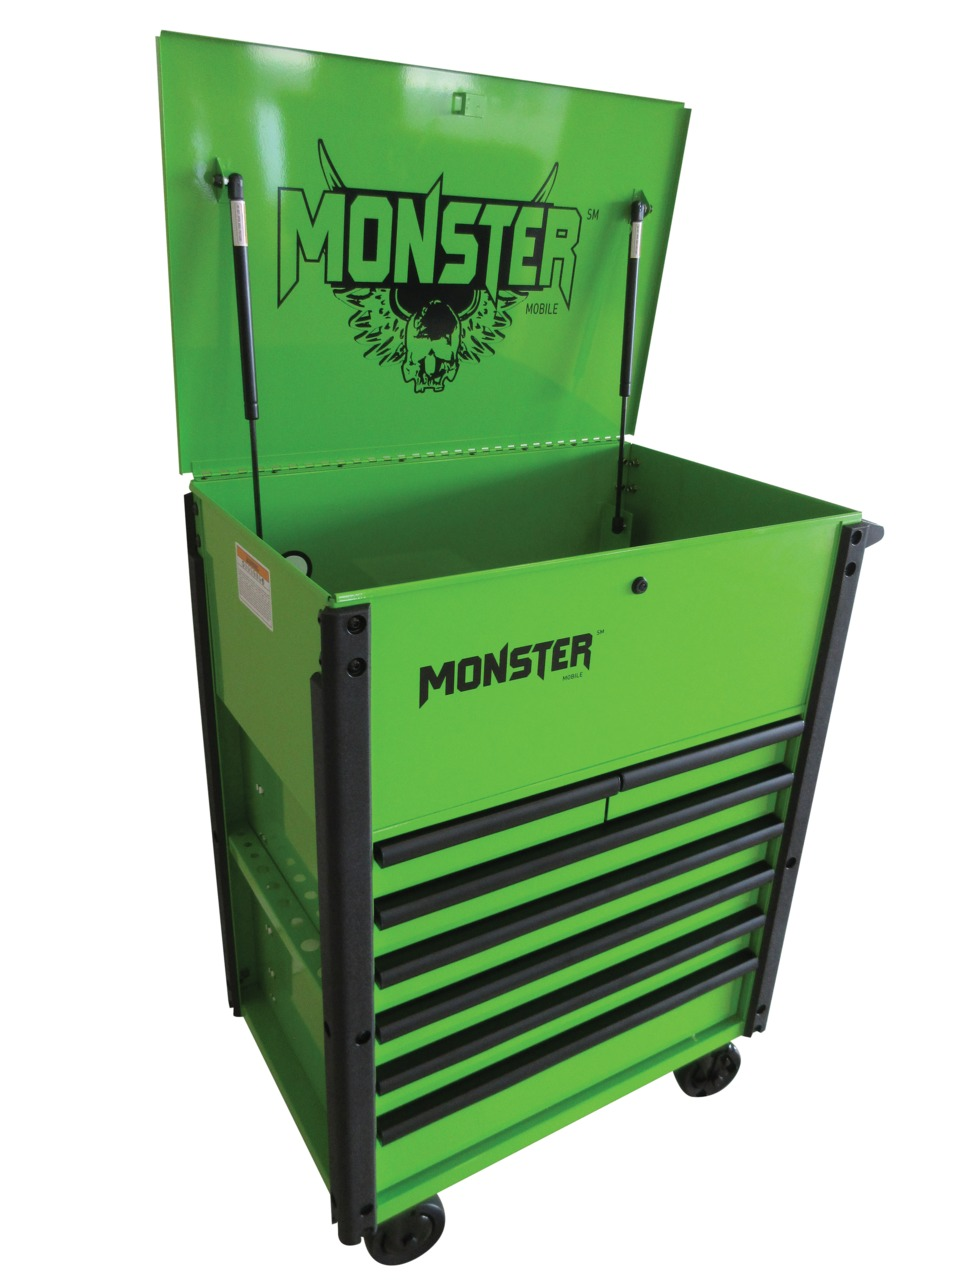 Innovative Mobile Masker Deluxe besides 3251279 furthermore 50380466 as well Matco Slide Top Tool Cart in addition Heavy Duty Folding Ladder. on tool service carts